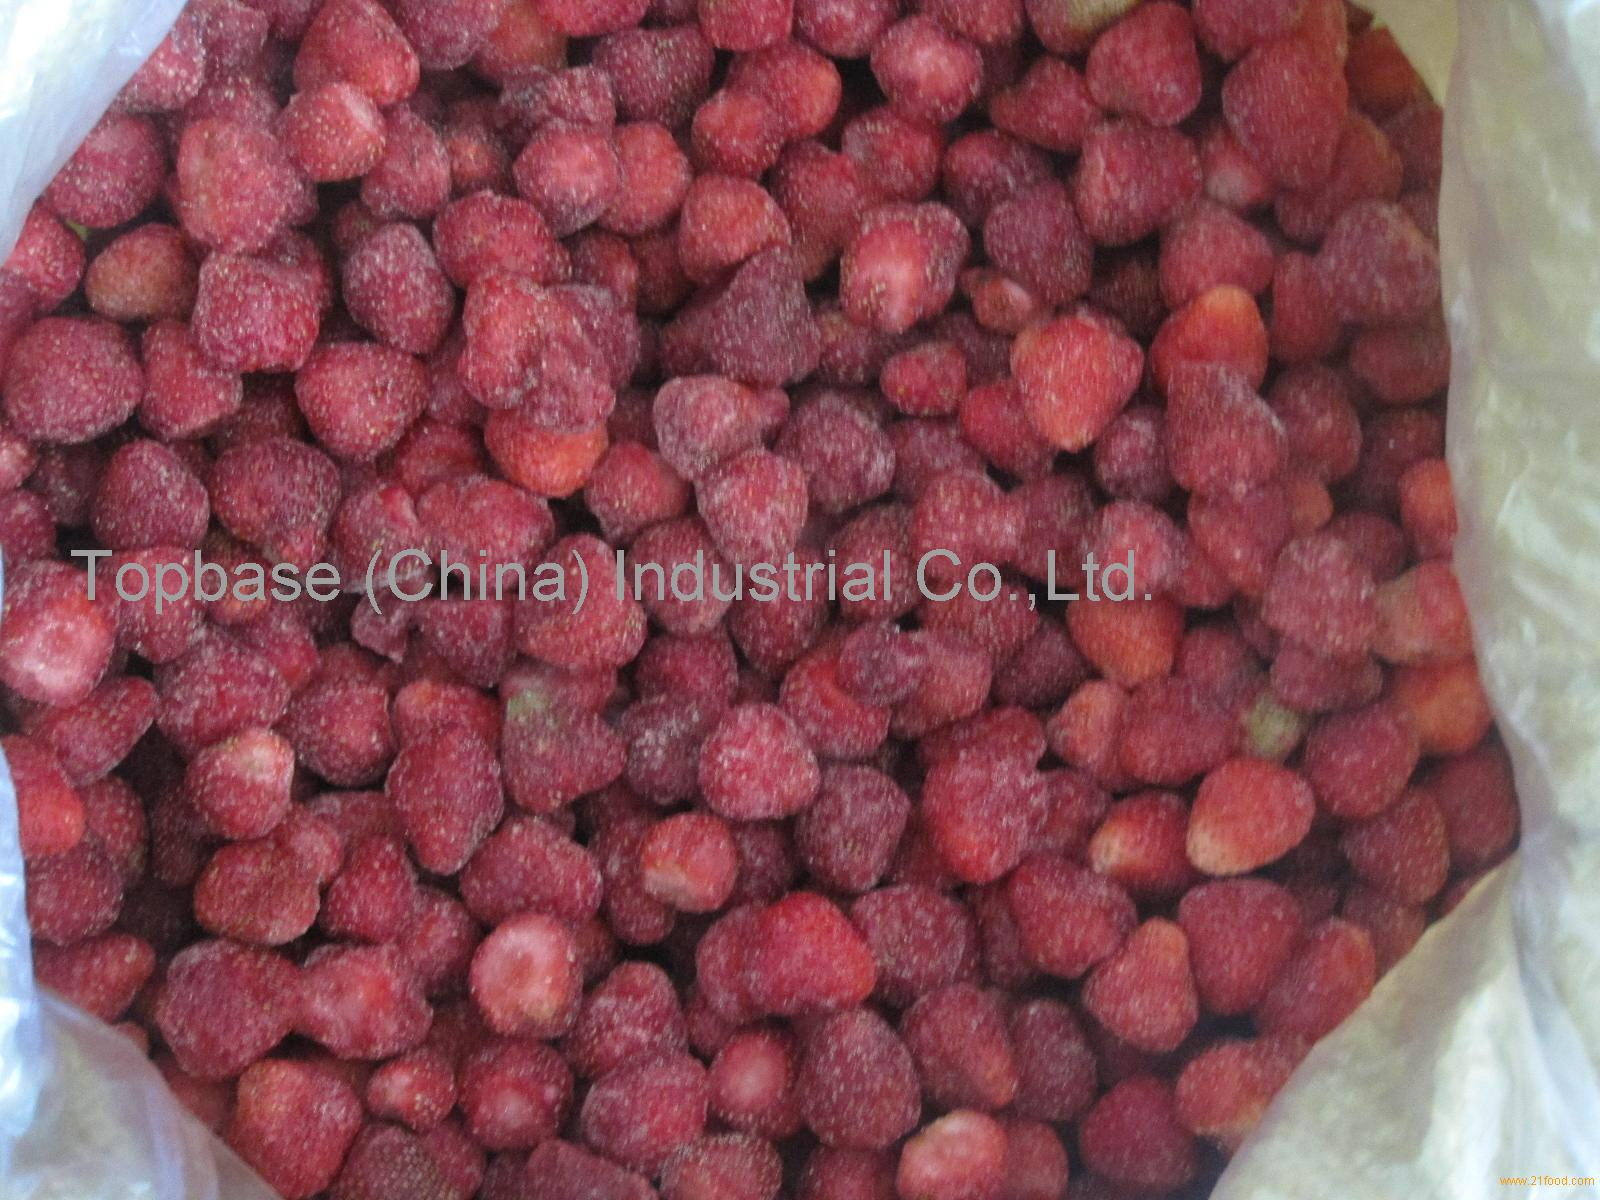 IQF Strawberry American 13 grade A products,China IQF Strawberry American 13 grade A supplier1600 x 1200 jpeg 253kB